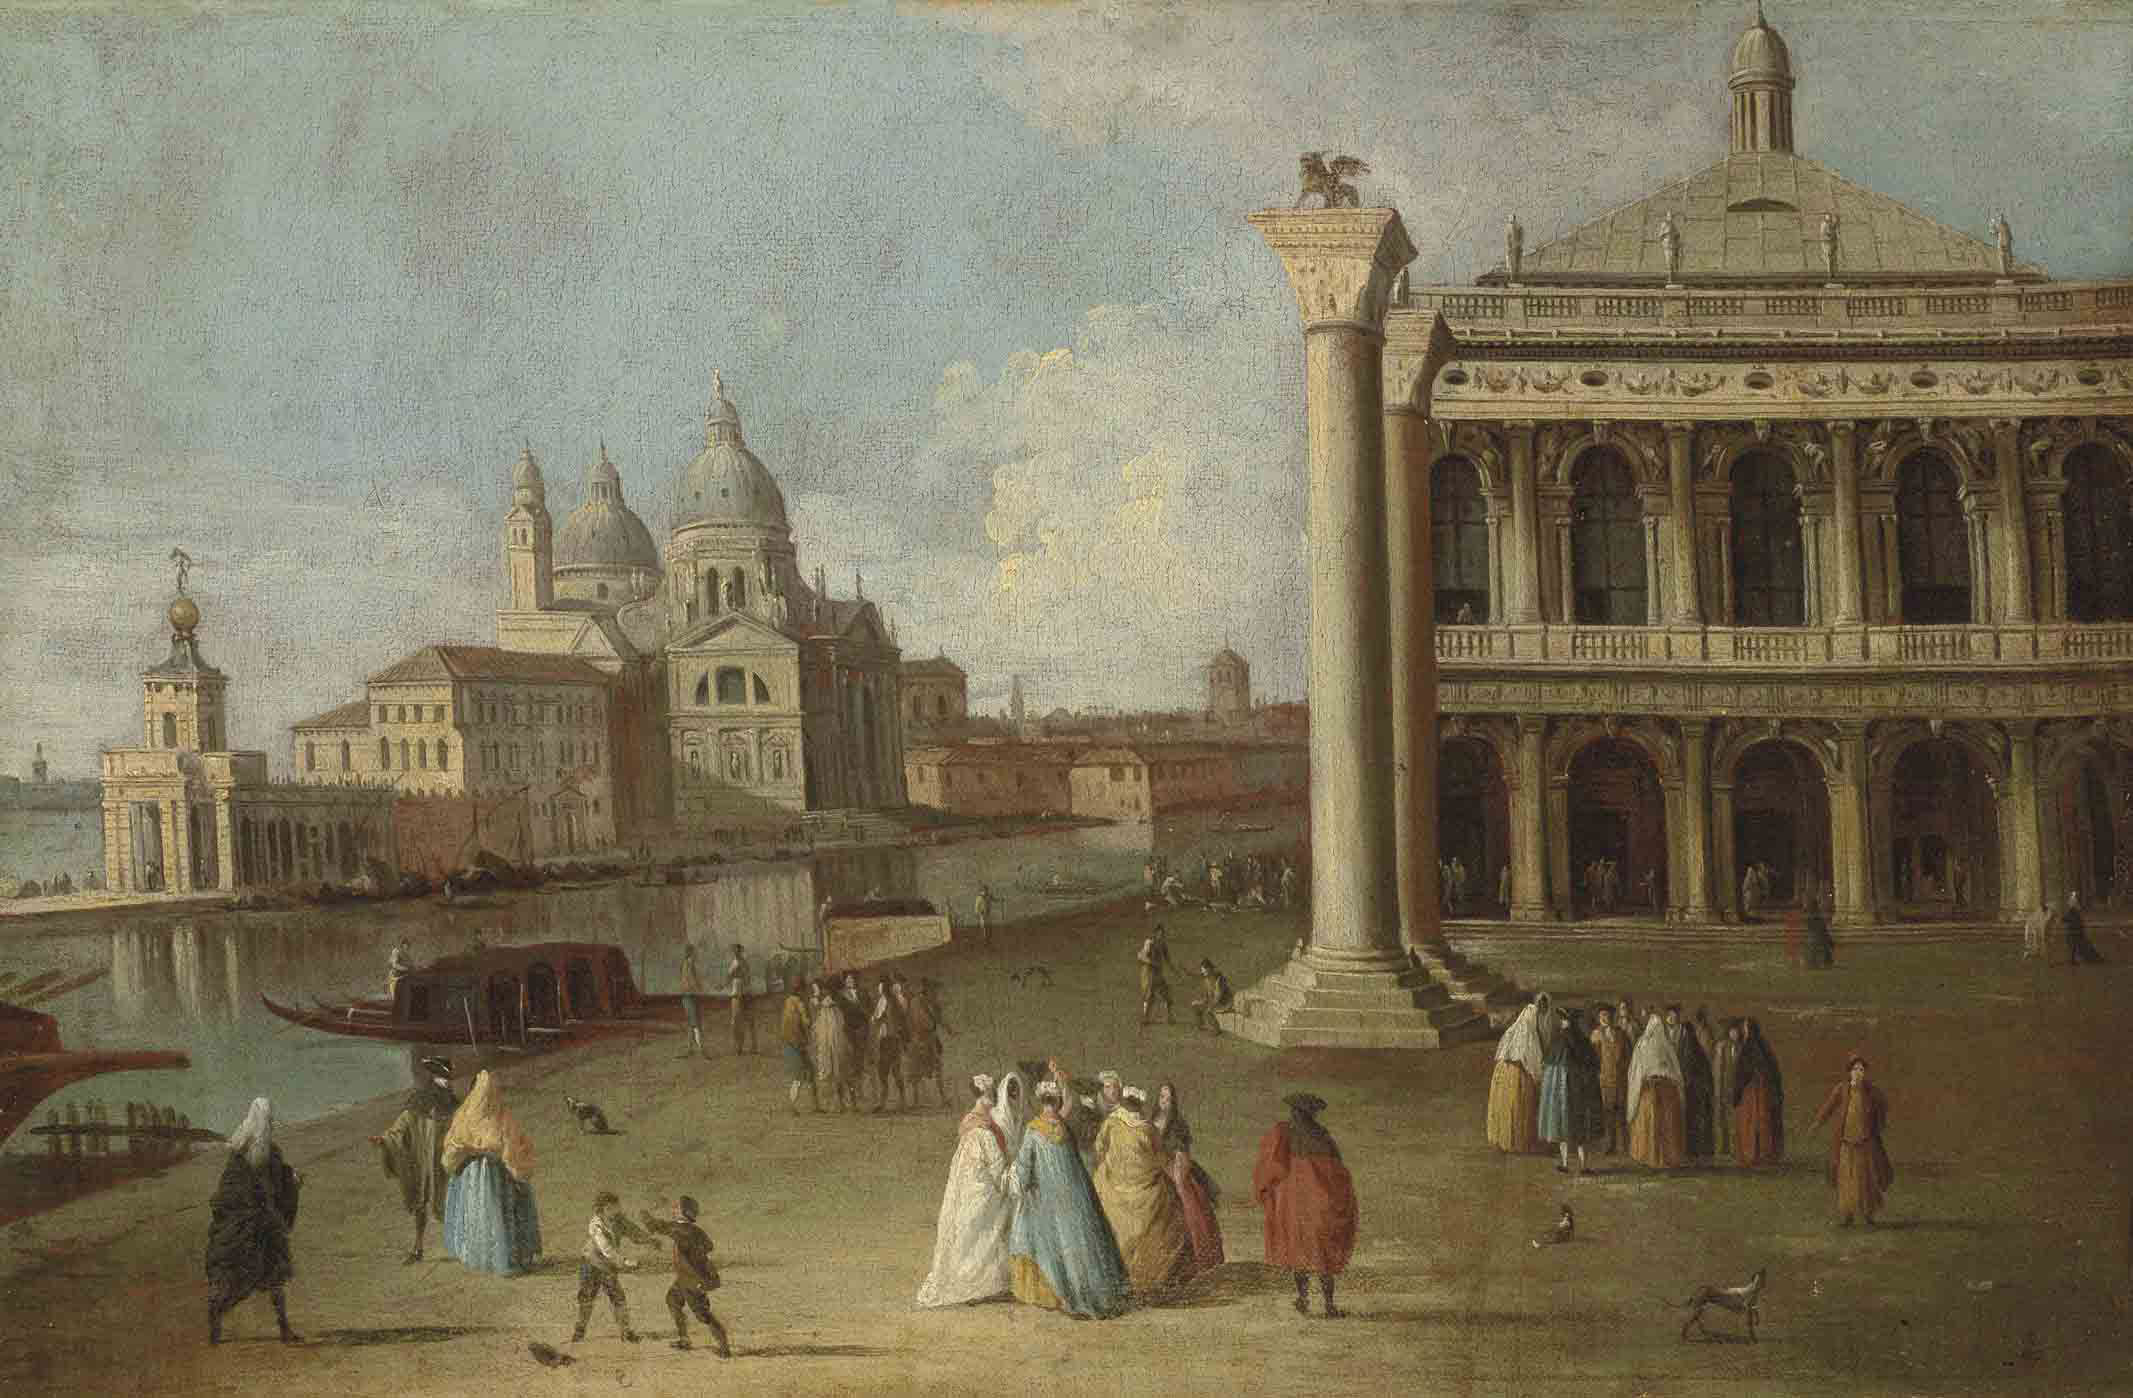 A view of the Piazzetta, Venice, with the Columns of Saints Mark and Theodore and the Library, the entrance to the Grand Canal with the Punta della Dogana and Santa Maria della Salute beyond